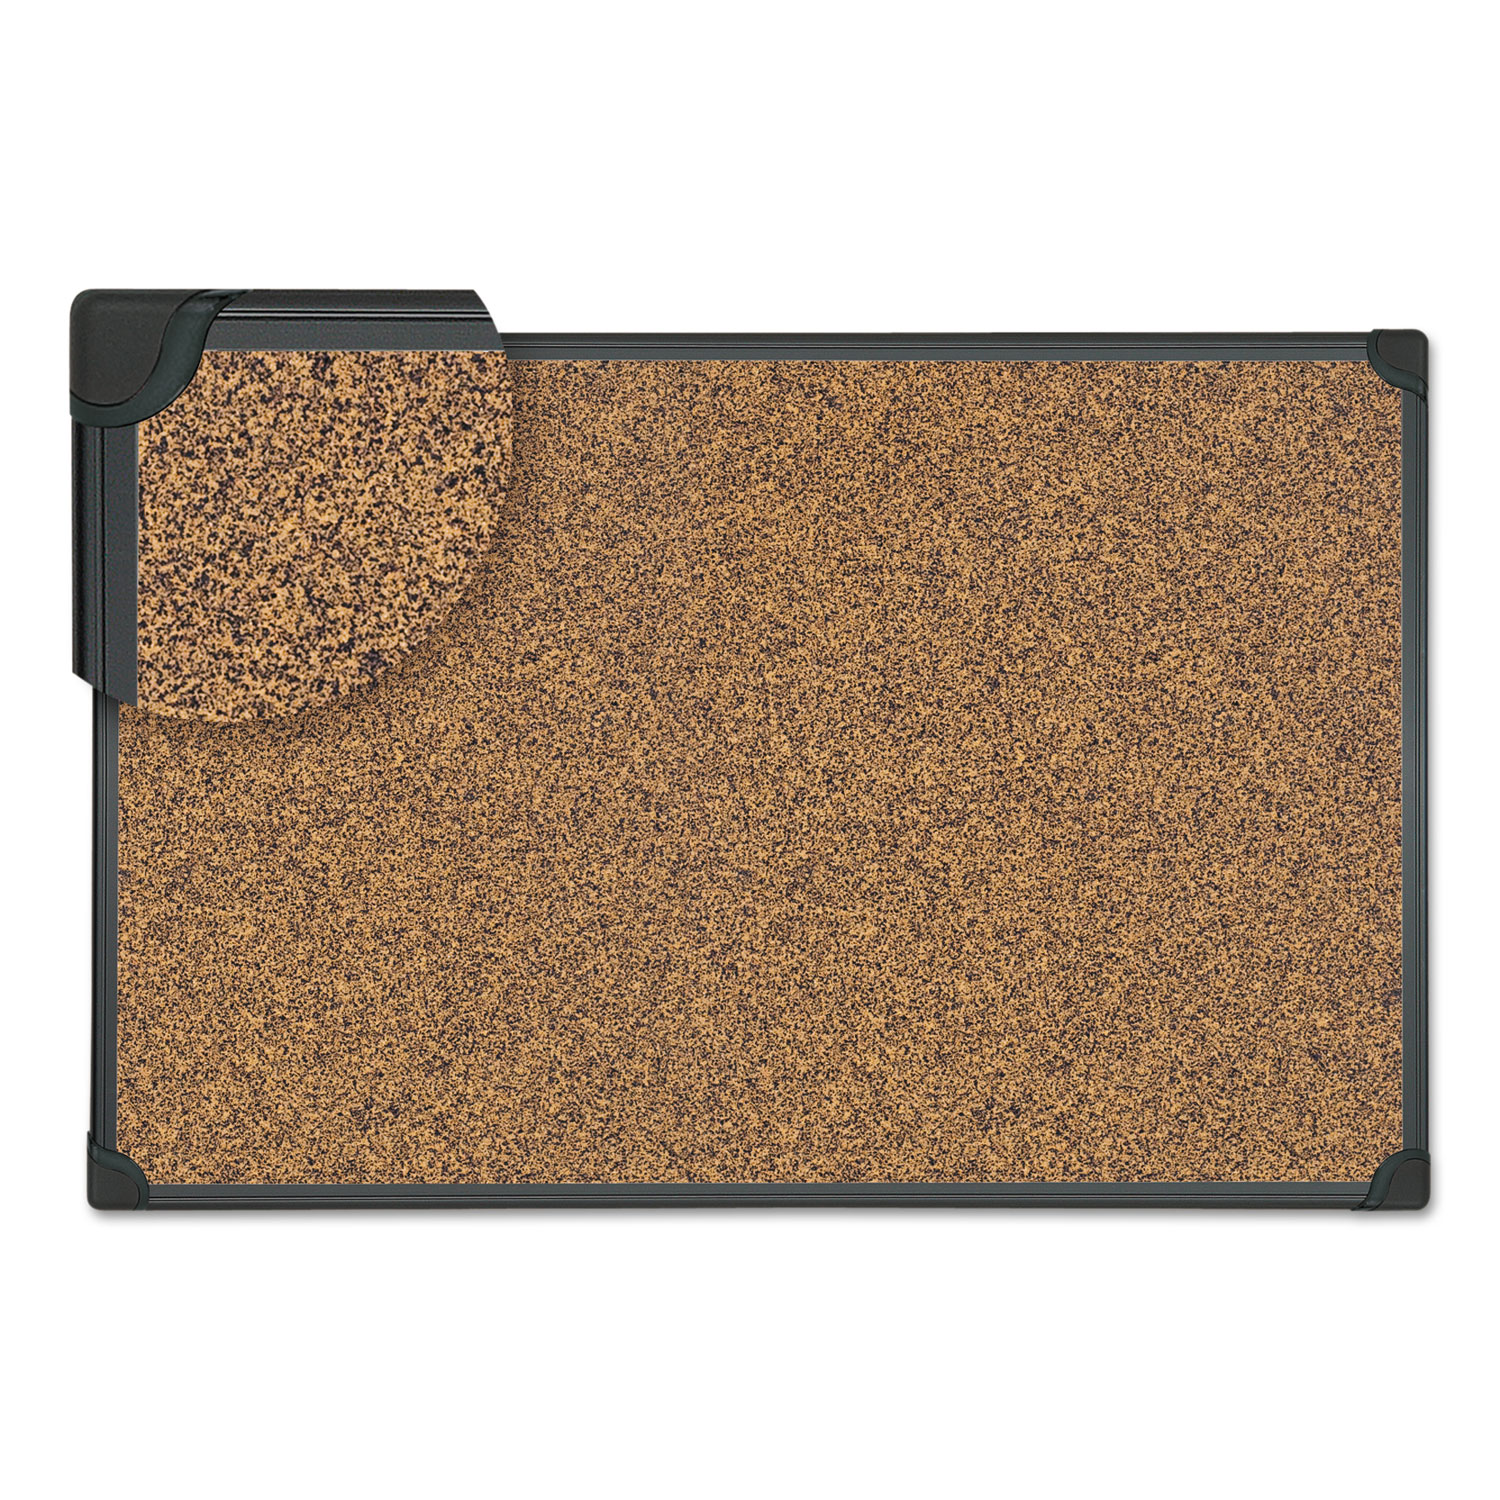 Tech Cork Board 36 X 24 Black Plastic Frame